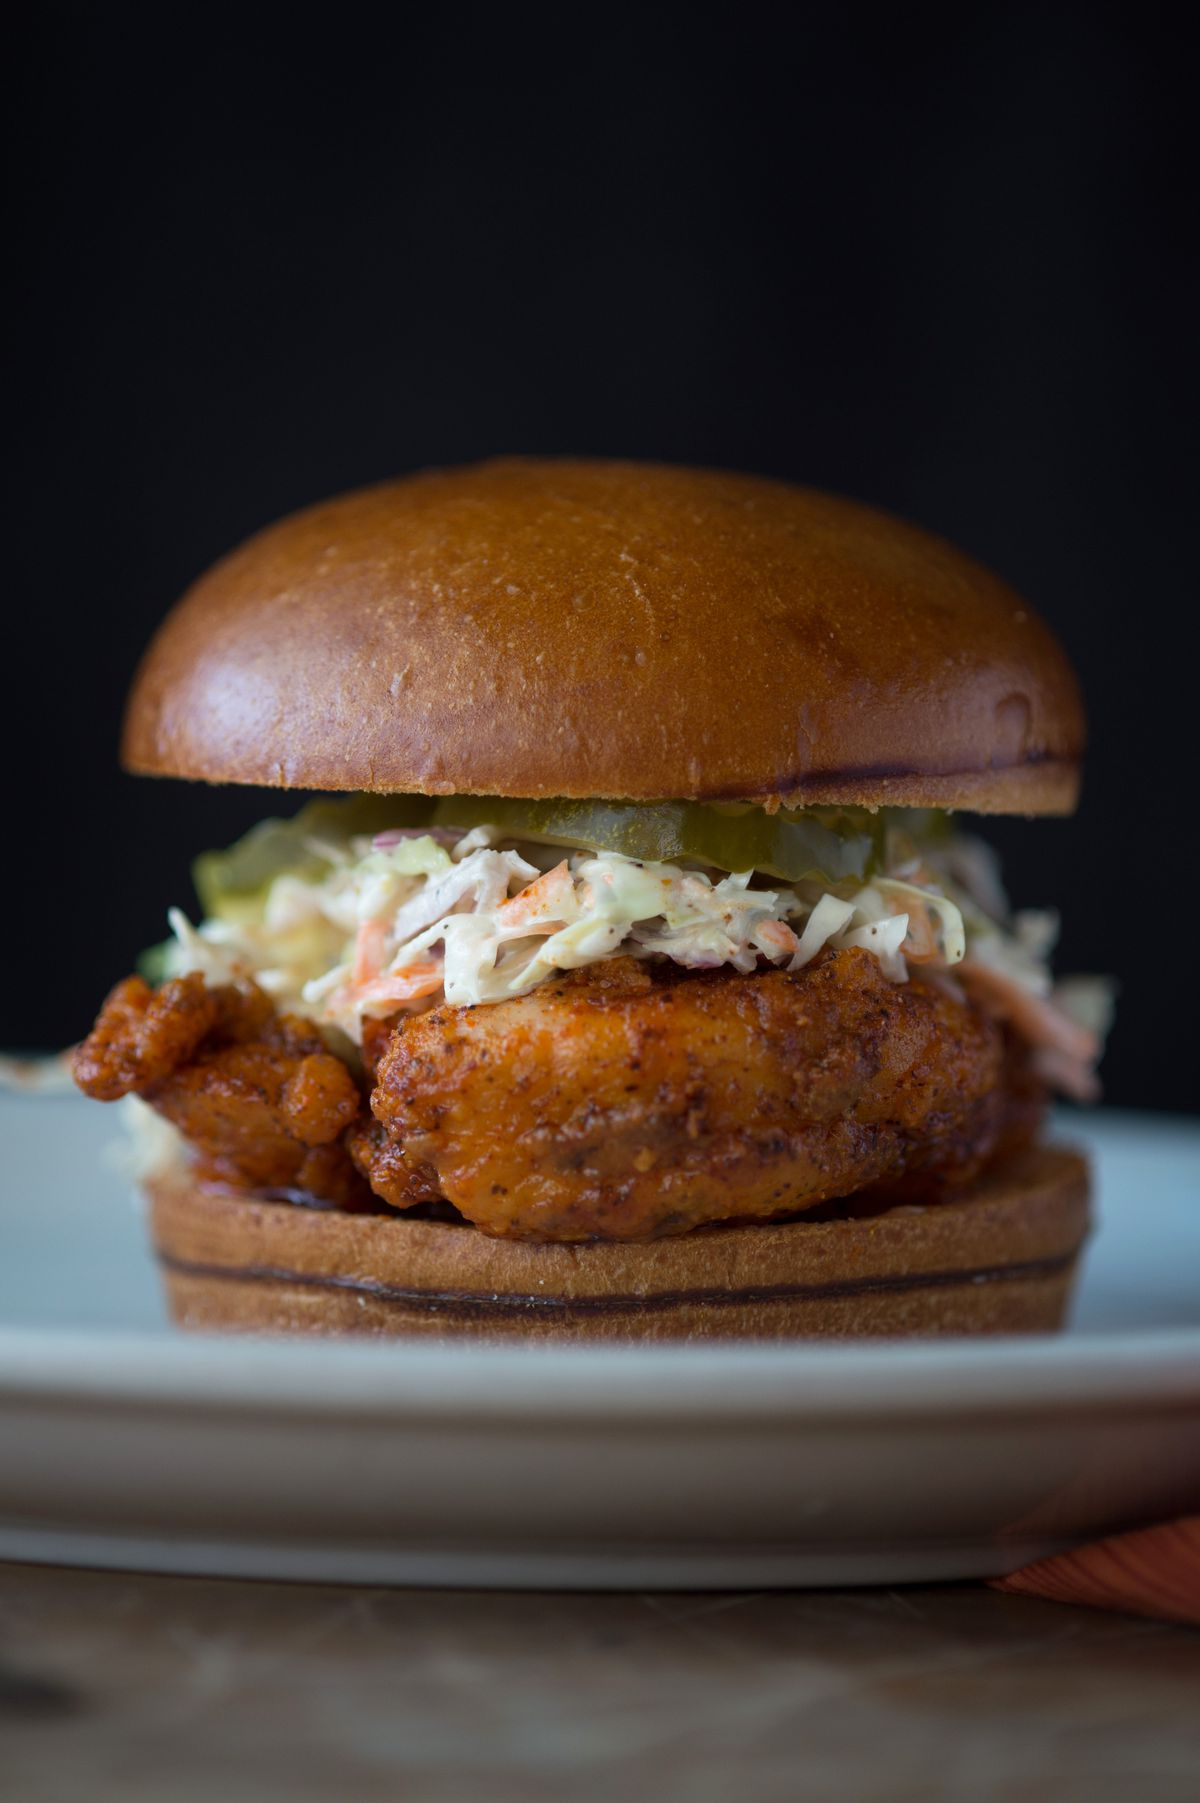 The Nashville Chicago hot chicken sandwich is on the menu at BJ's Market & Bakery at Taste of Chicago.